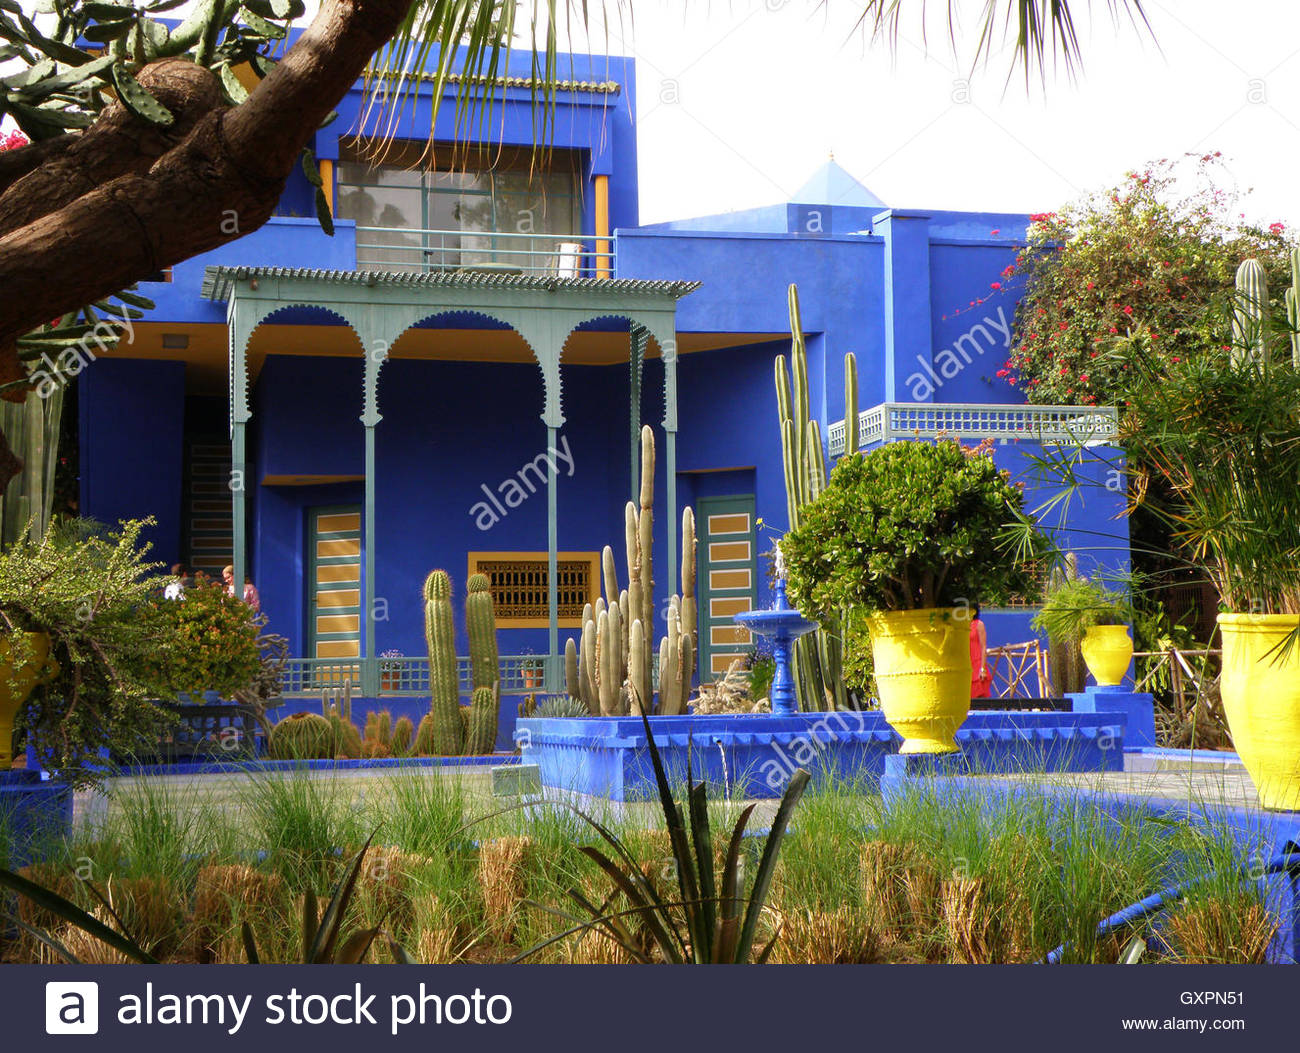 Garden majorelle marakesh check out garden majorelle for Jardin marrakech